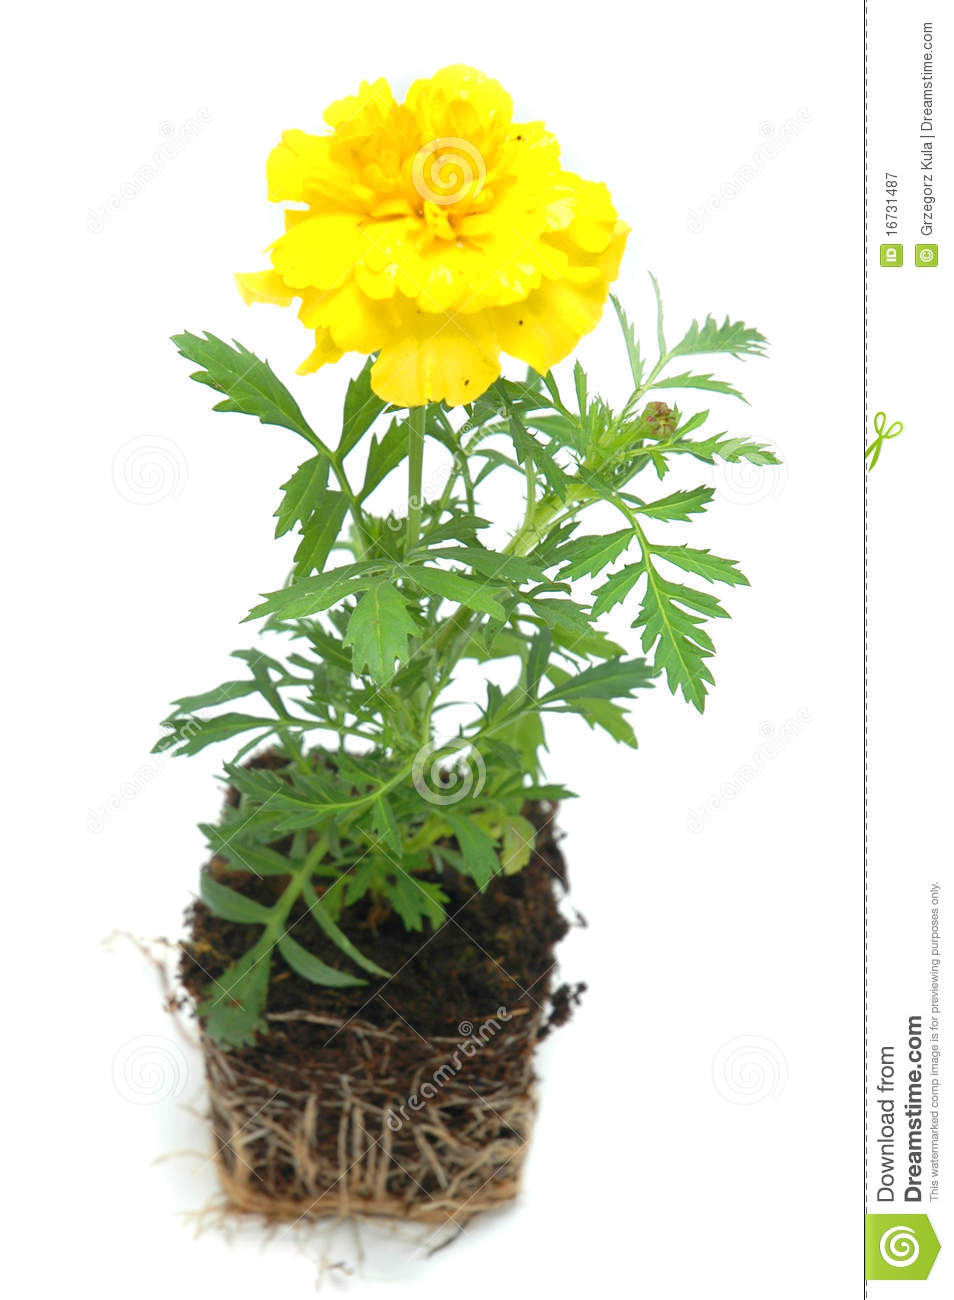 Flower Royalty Free Stock Photography - Image: 16731487 Marigold Plant With Roots